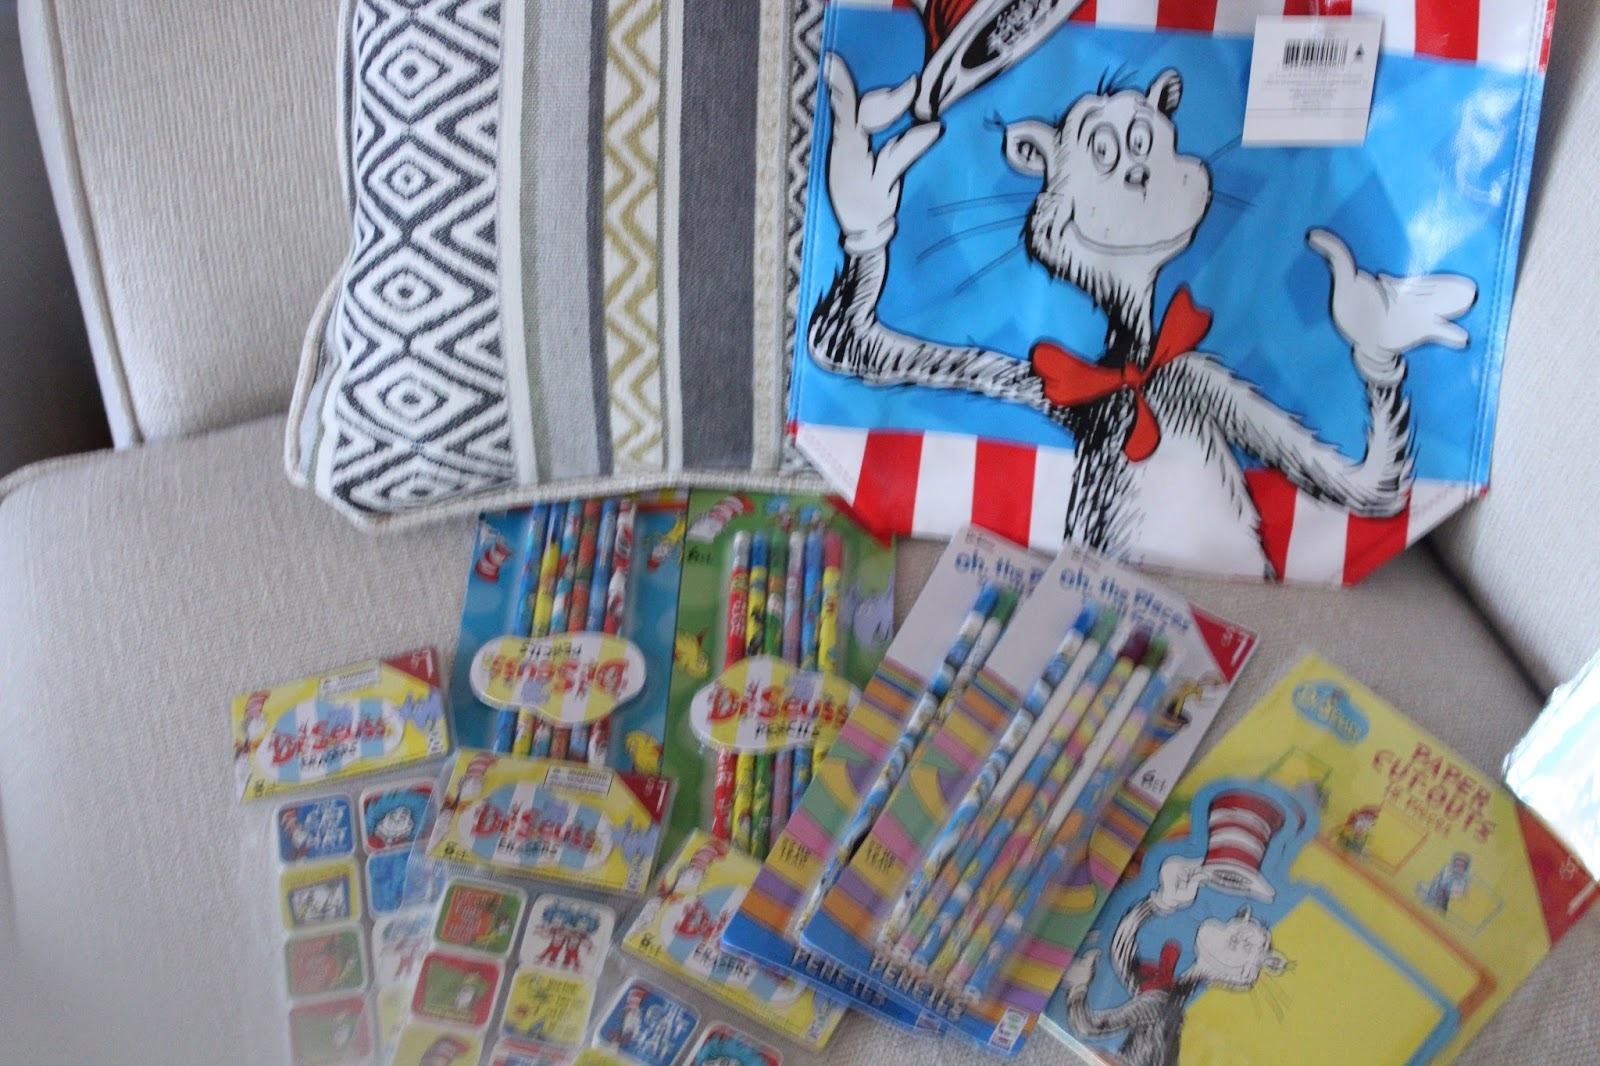 Marvelous Dr Seuss Pencils and Erasers from the Target dollar bins